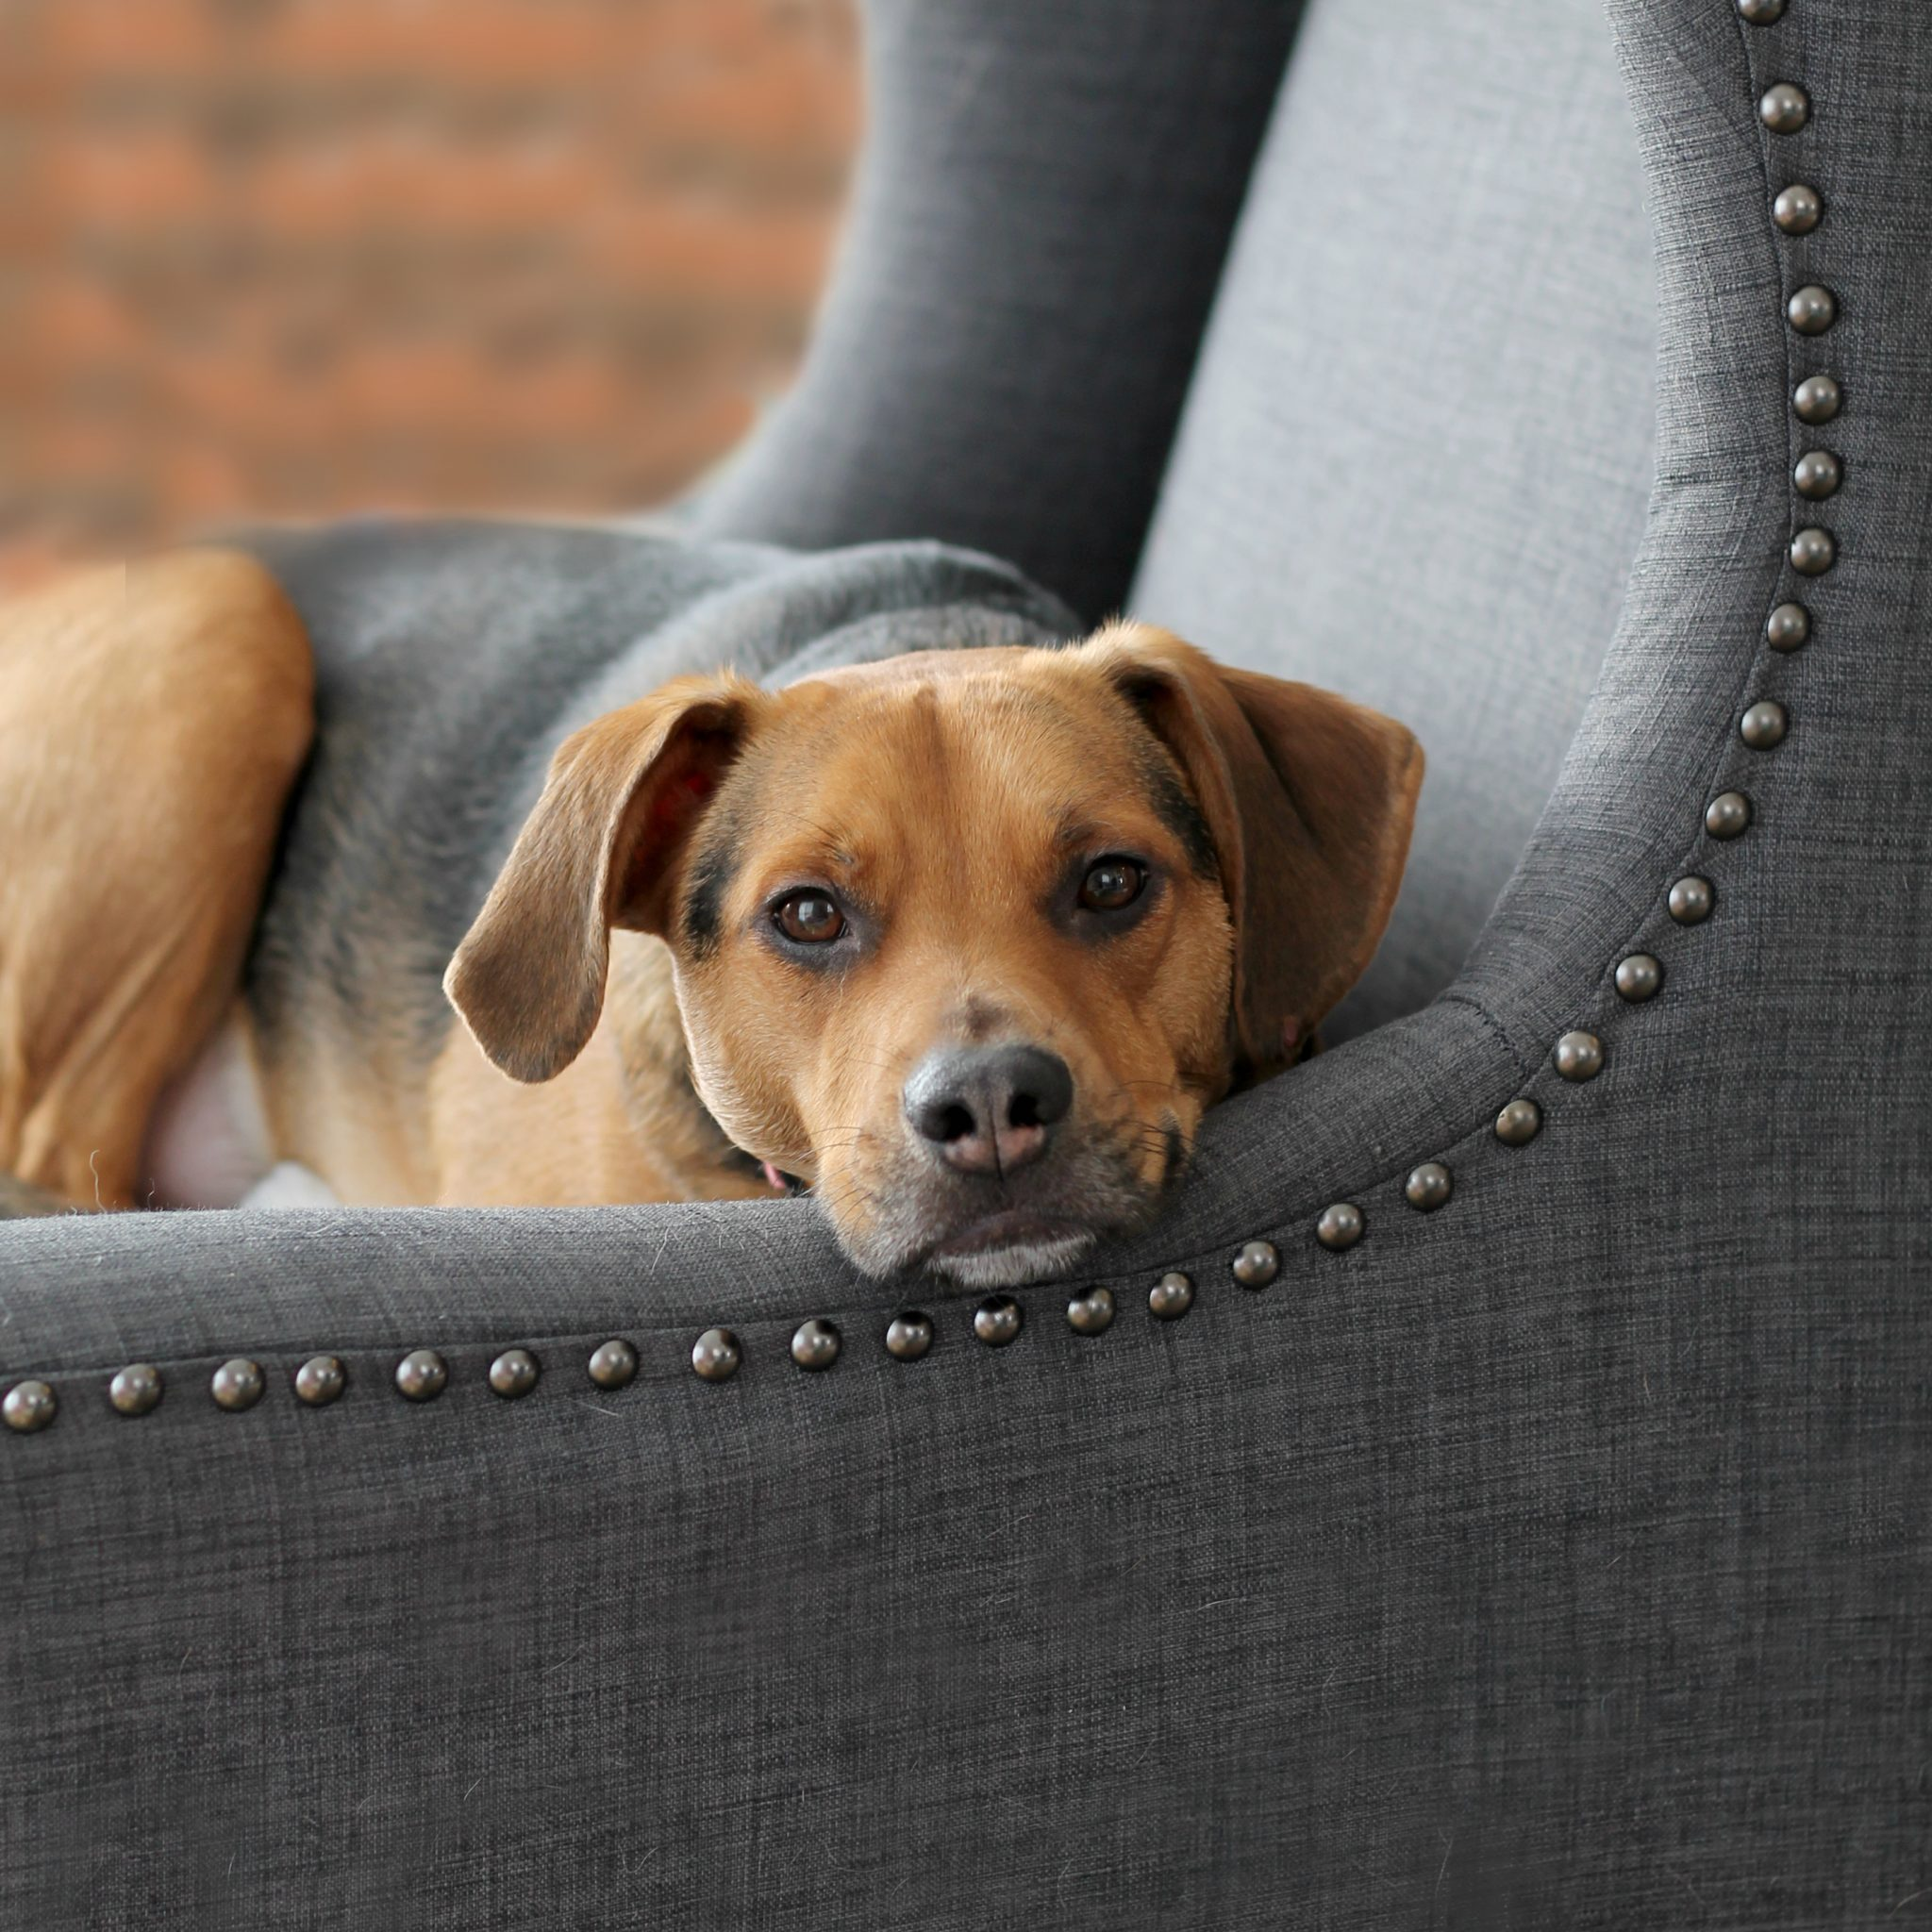 5 Ways to Spend Quality Time with Your Dog